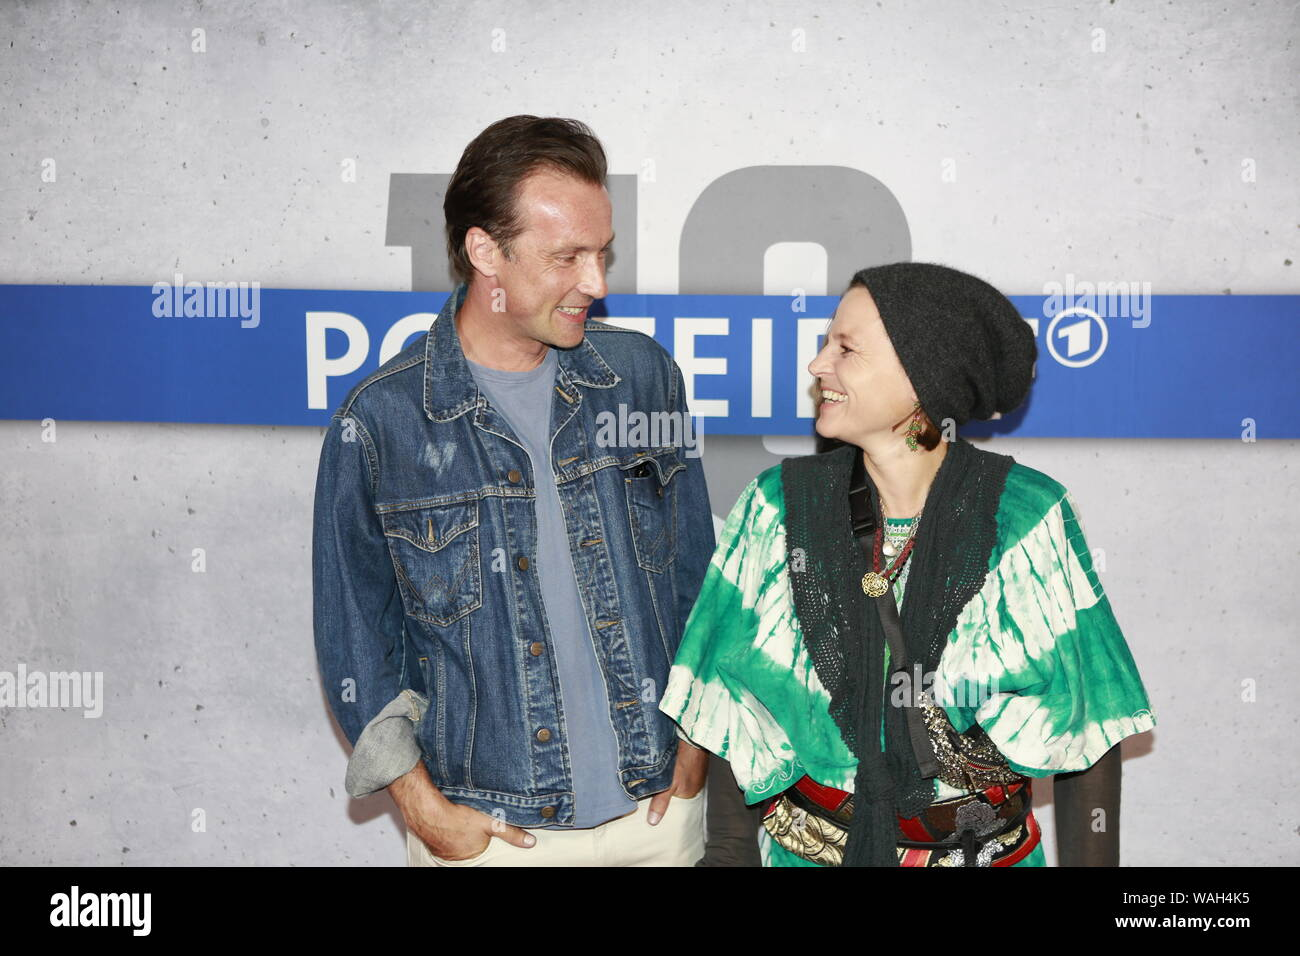 08/20/2019, Berlin, Germany. Maria Simon and Lucas Gregorowicz at the Preview of the new rbb police call 110: Heimatliebe on Kurfürstendamm in Berlin-Charlottenburg. Stock Photo